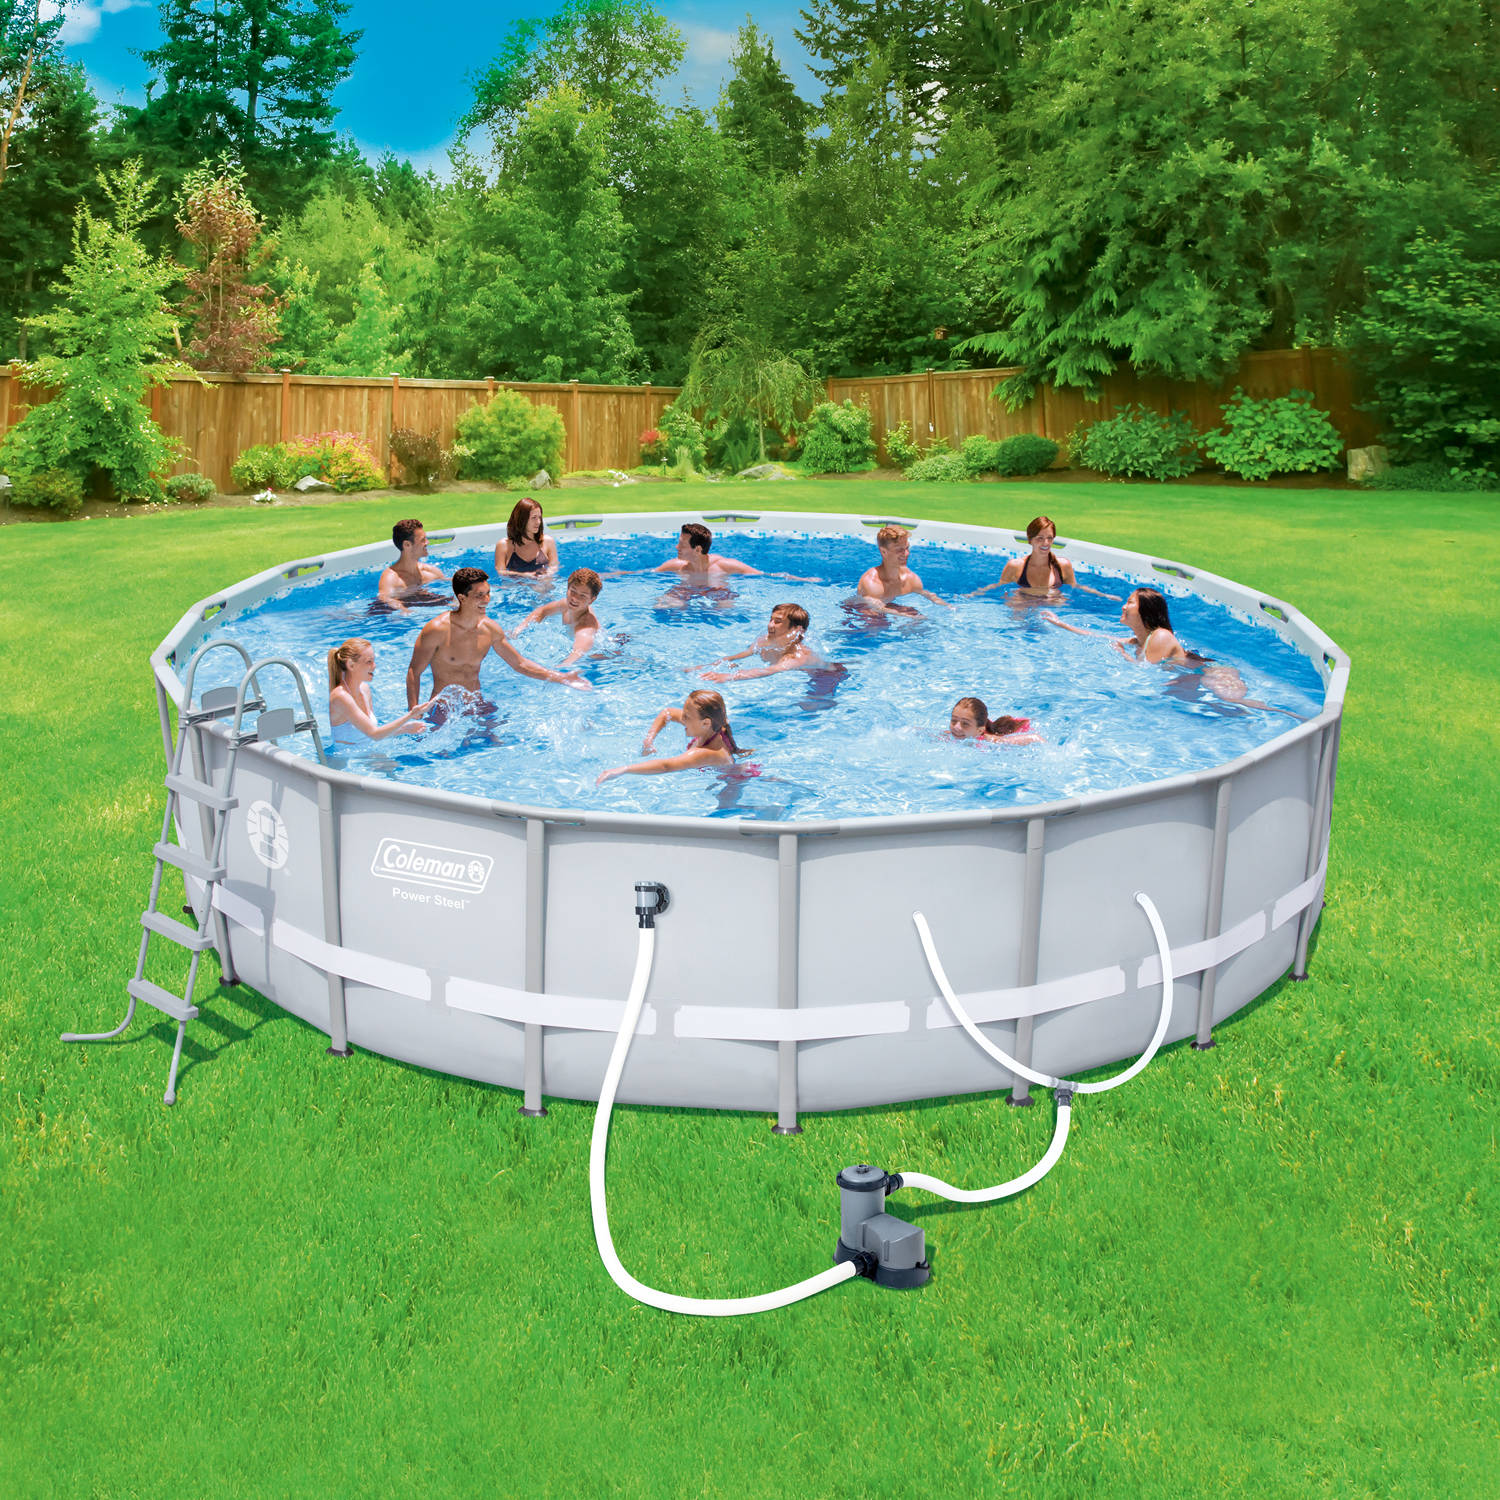 "Coleman Power Steel 18' x 48"" Frame Swimming Pool Set"